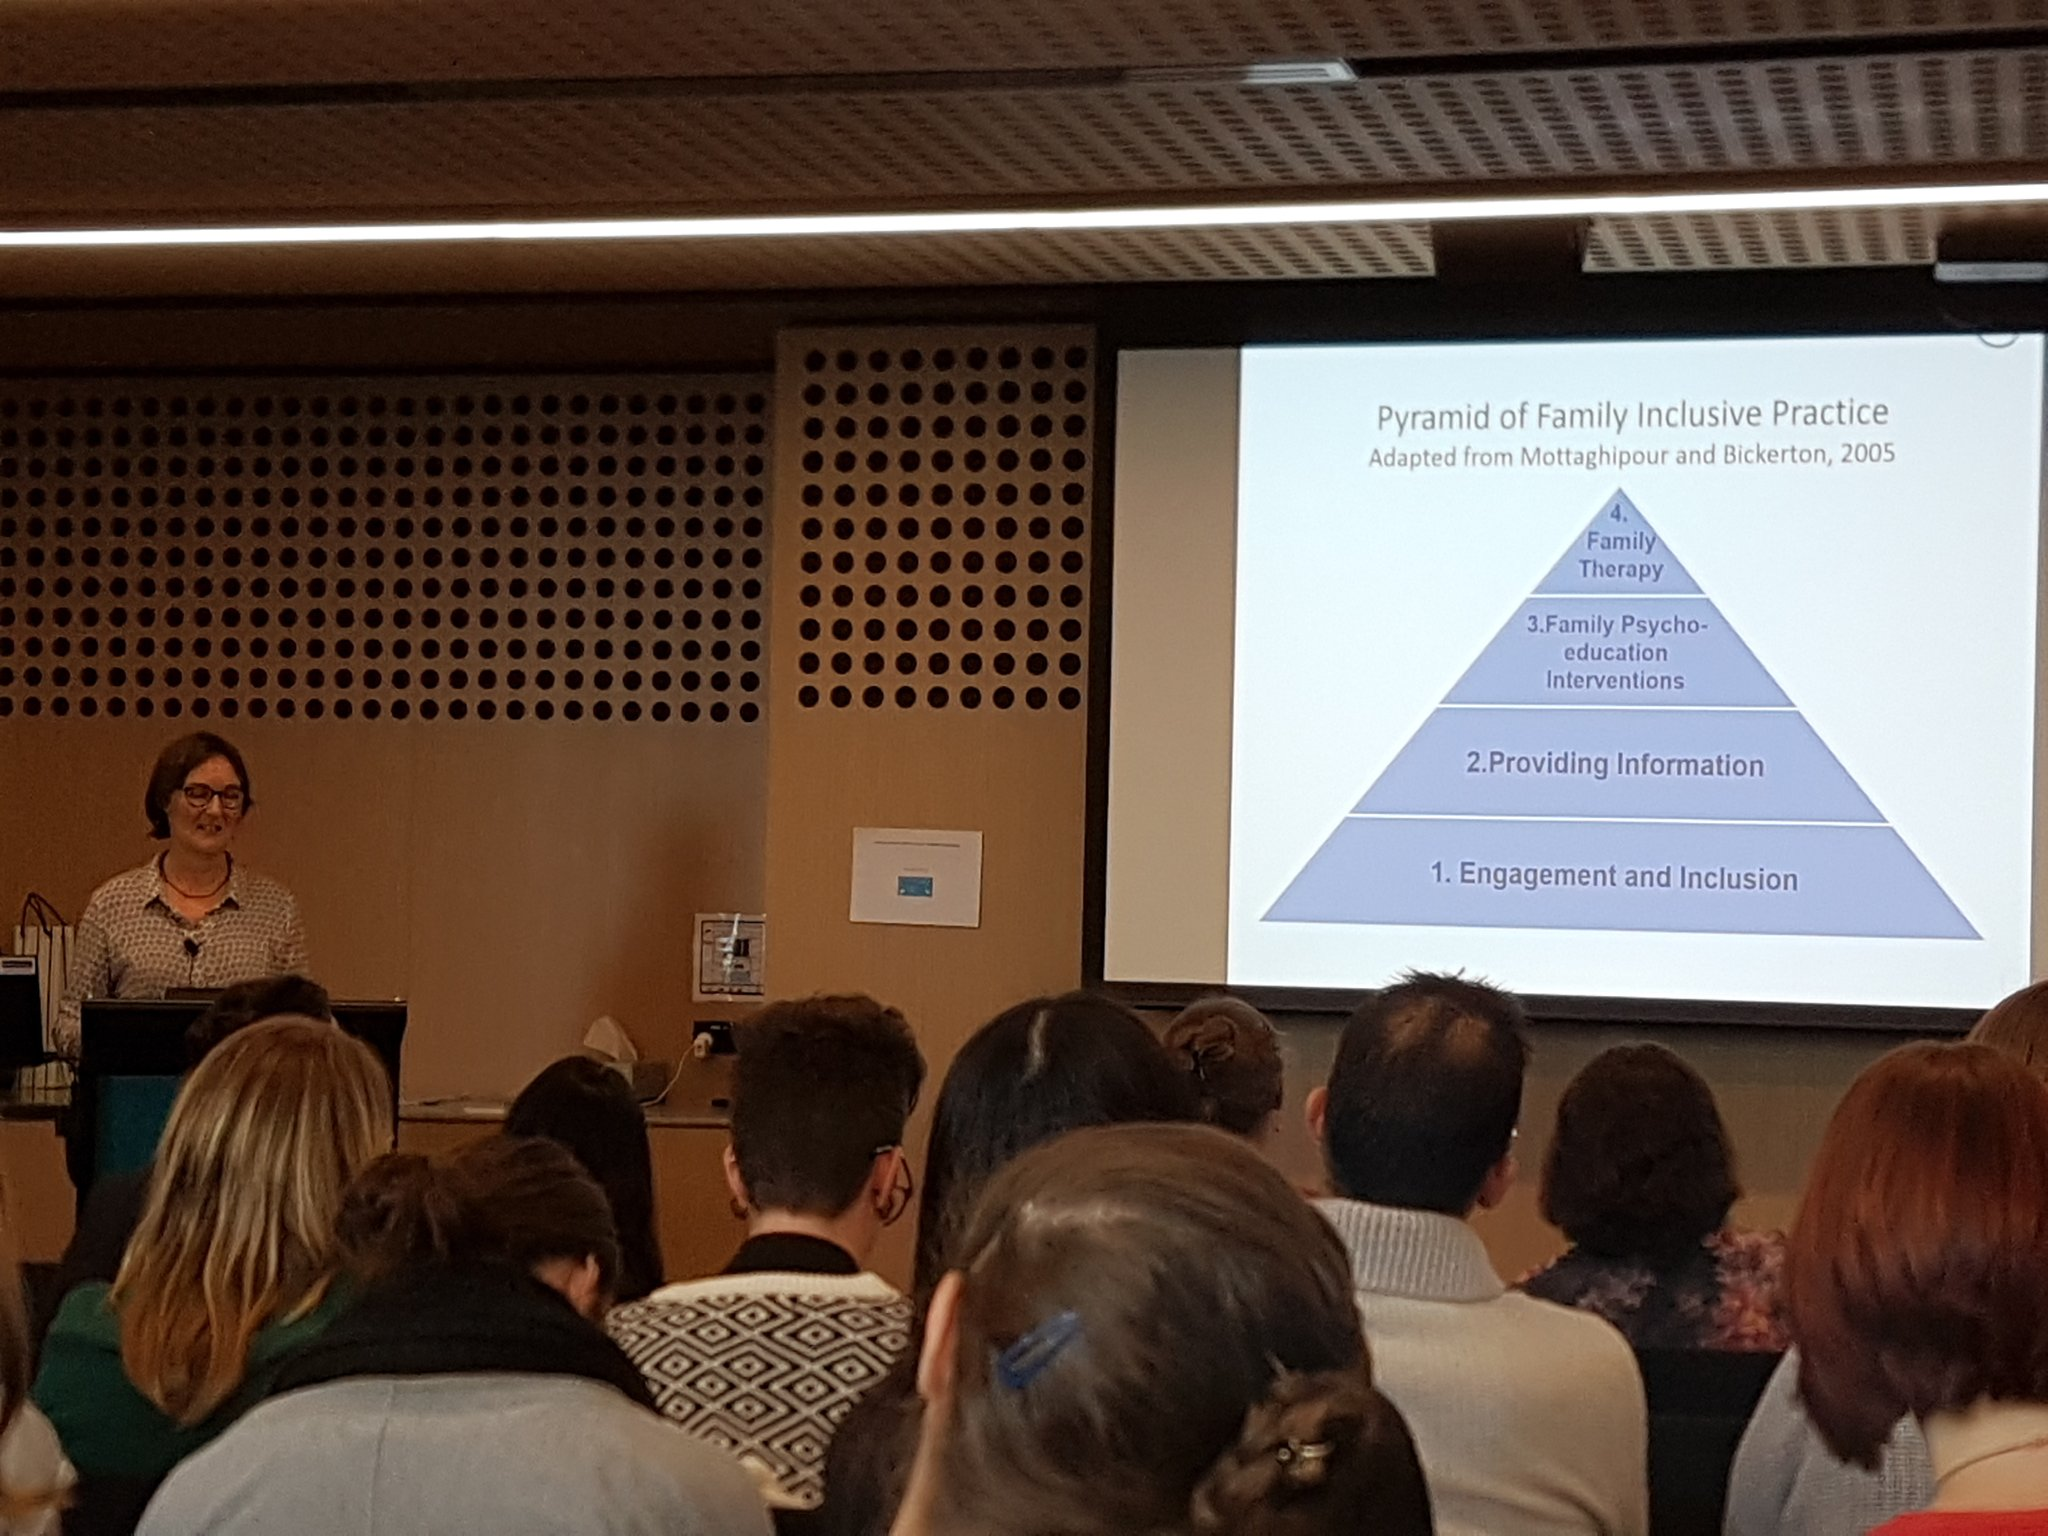 #mhotsymp2017 The pyramid of family inclusive practice - key practice resource @headspace_aus https://t.co/ZpF5wo2pcM